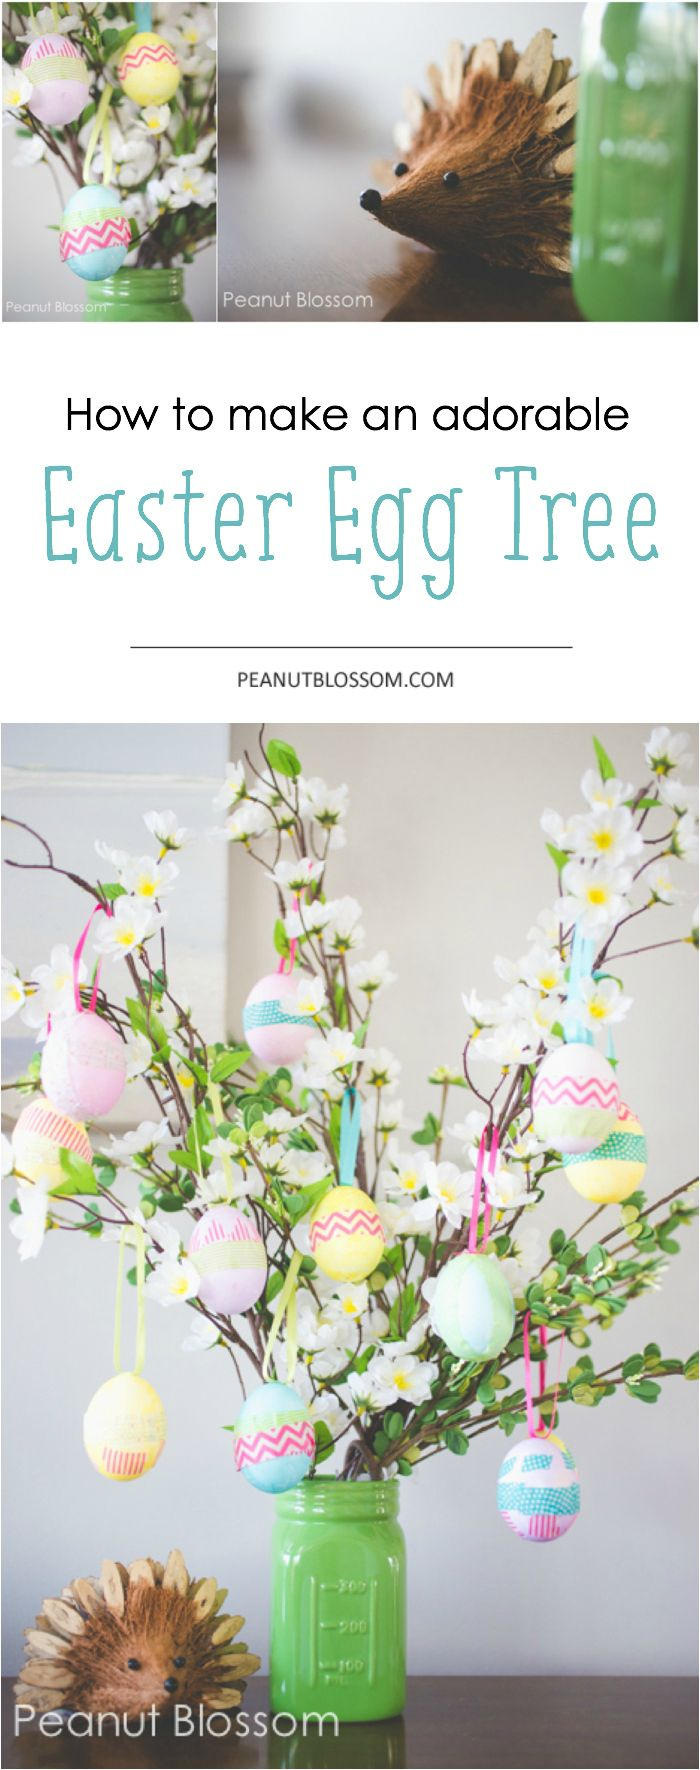 Best 25+ Easter tree ideas on Pinterest | Easter tree decorations, Easter crafts and Easter eggs ...